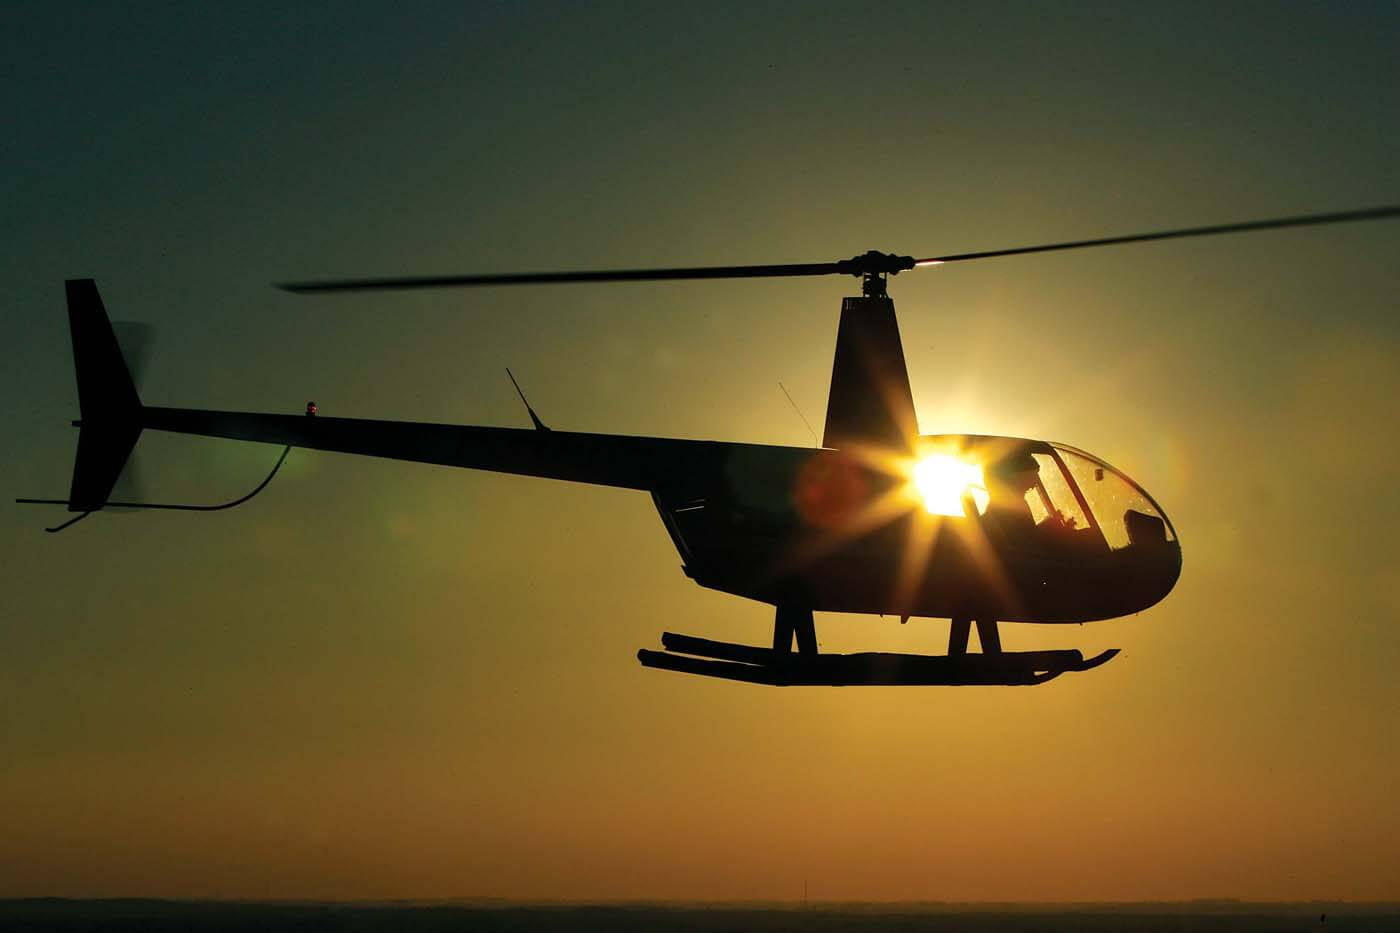 Recent accident reports out of New Zealand have raised new questions about the causes of mast bumping accidents in Robinson helicopters